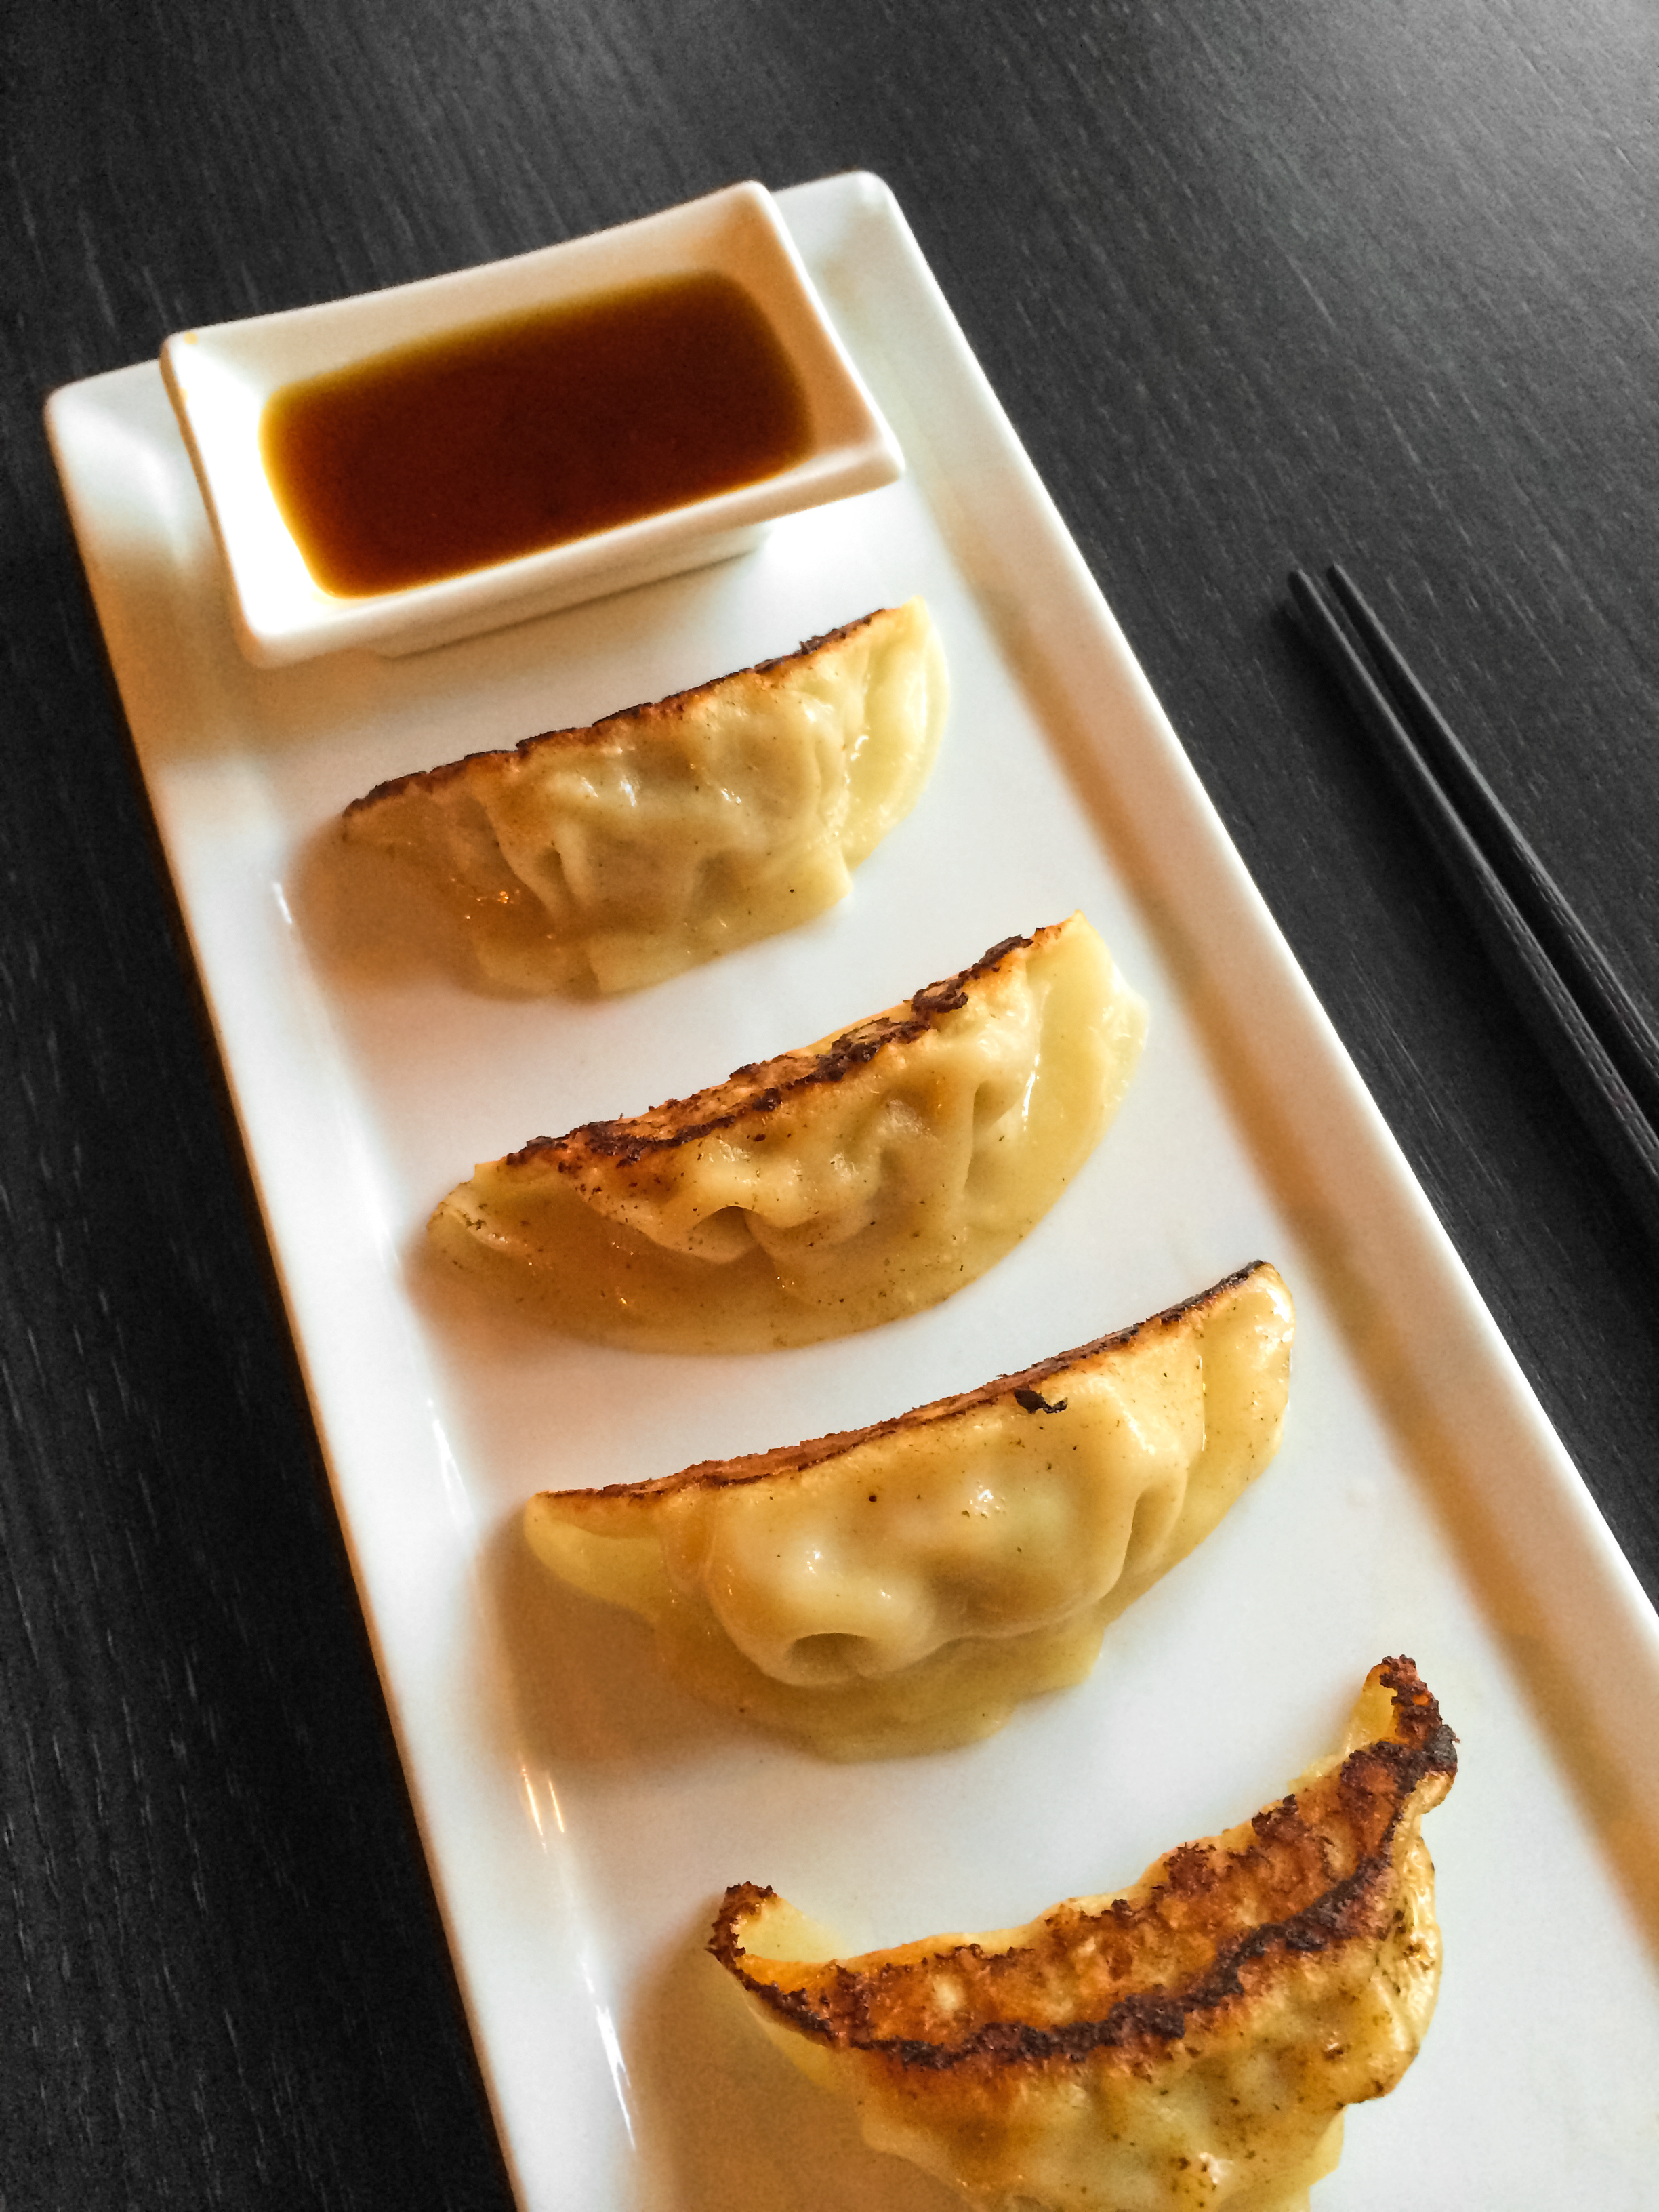 Pan-fried dumplings Japanese cuisine